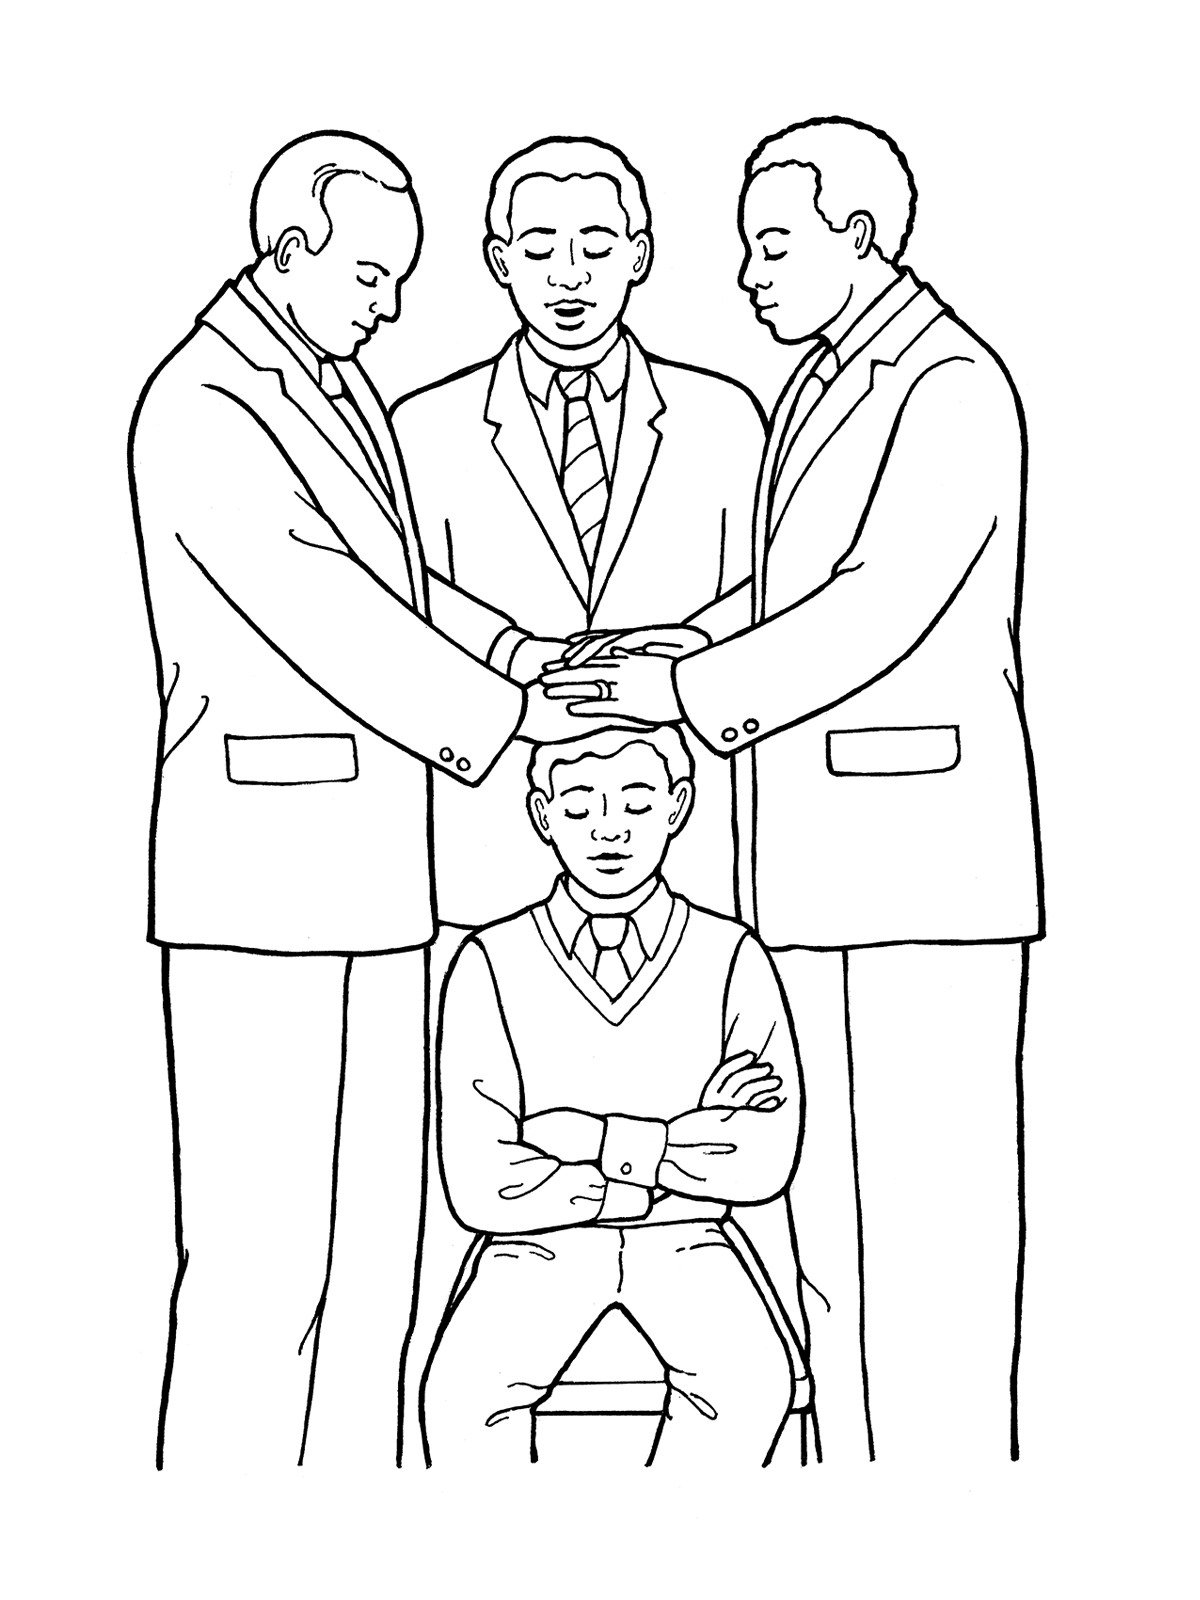 Laying on of hands clipart picture stock 5th Article of Faith—Hands picture stock